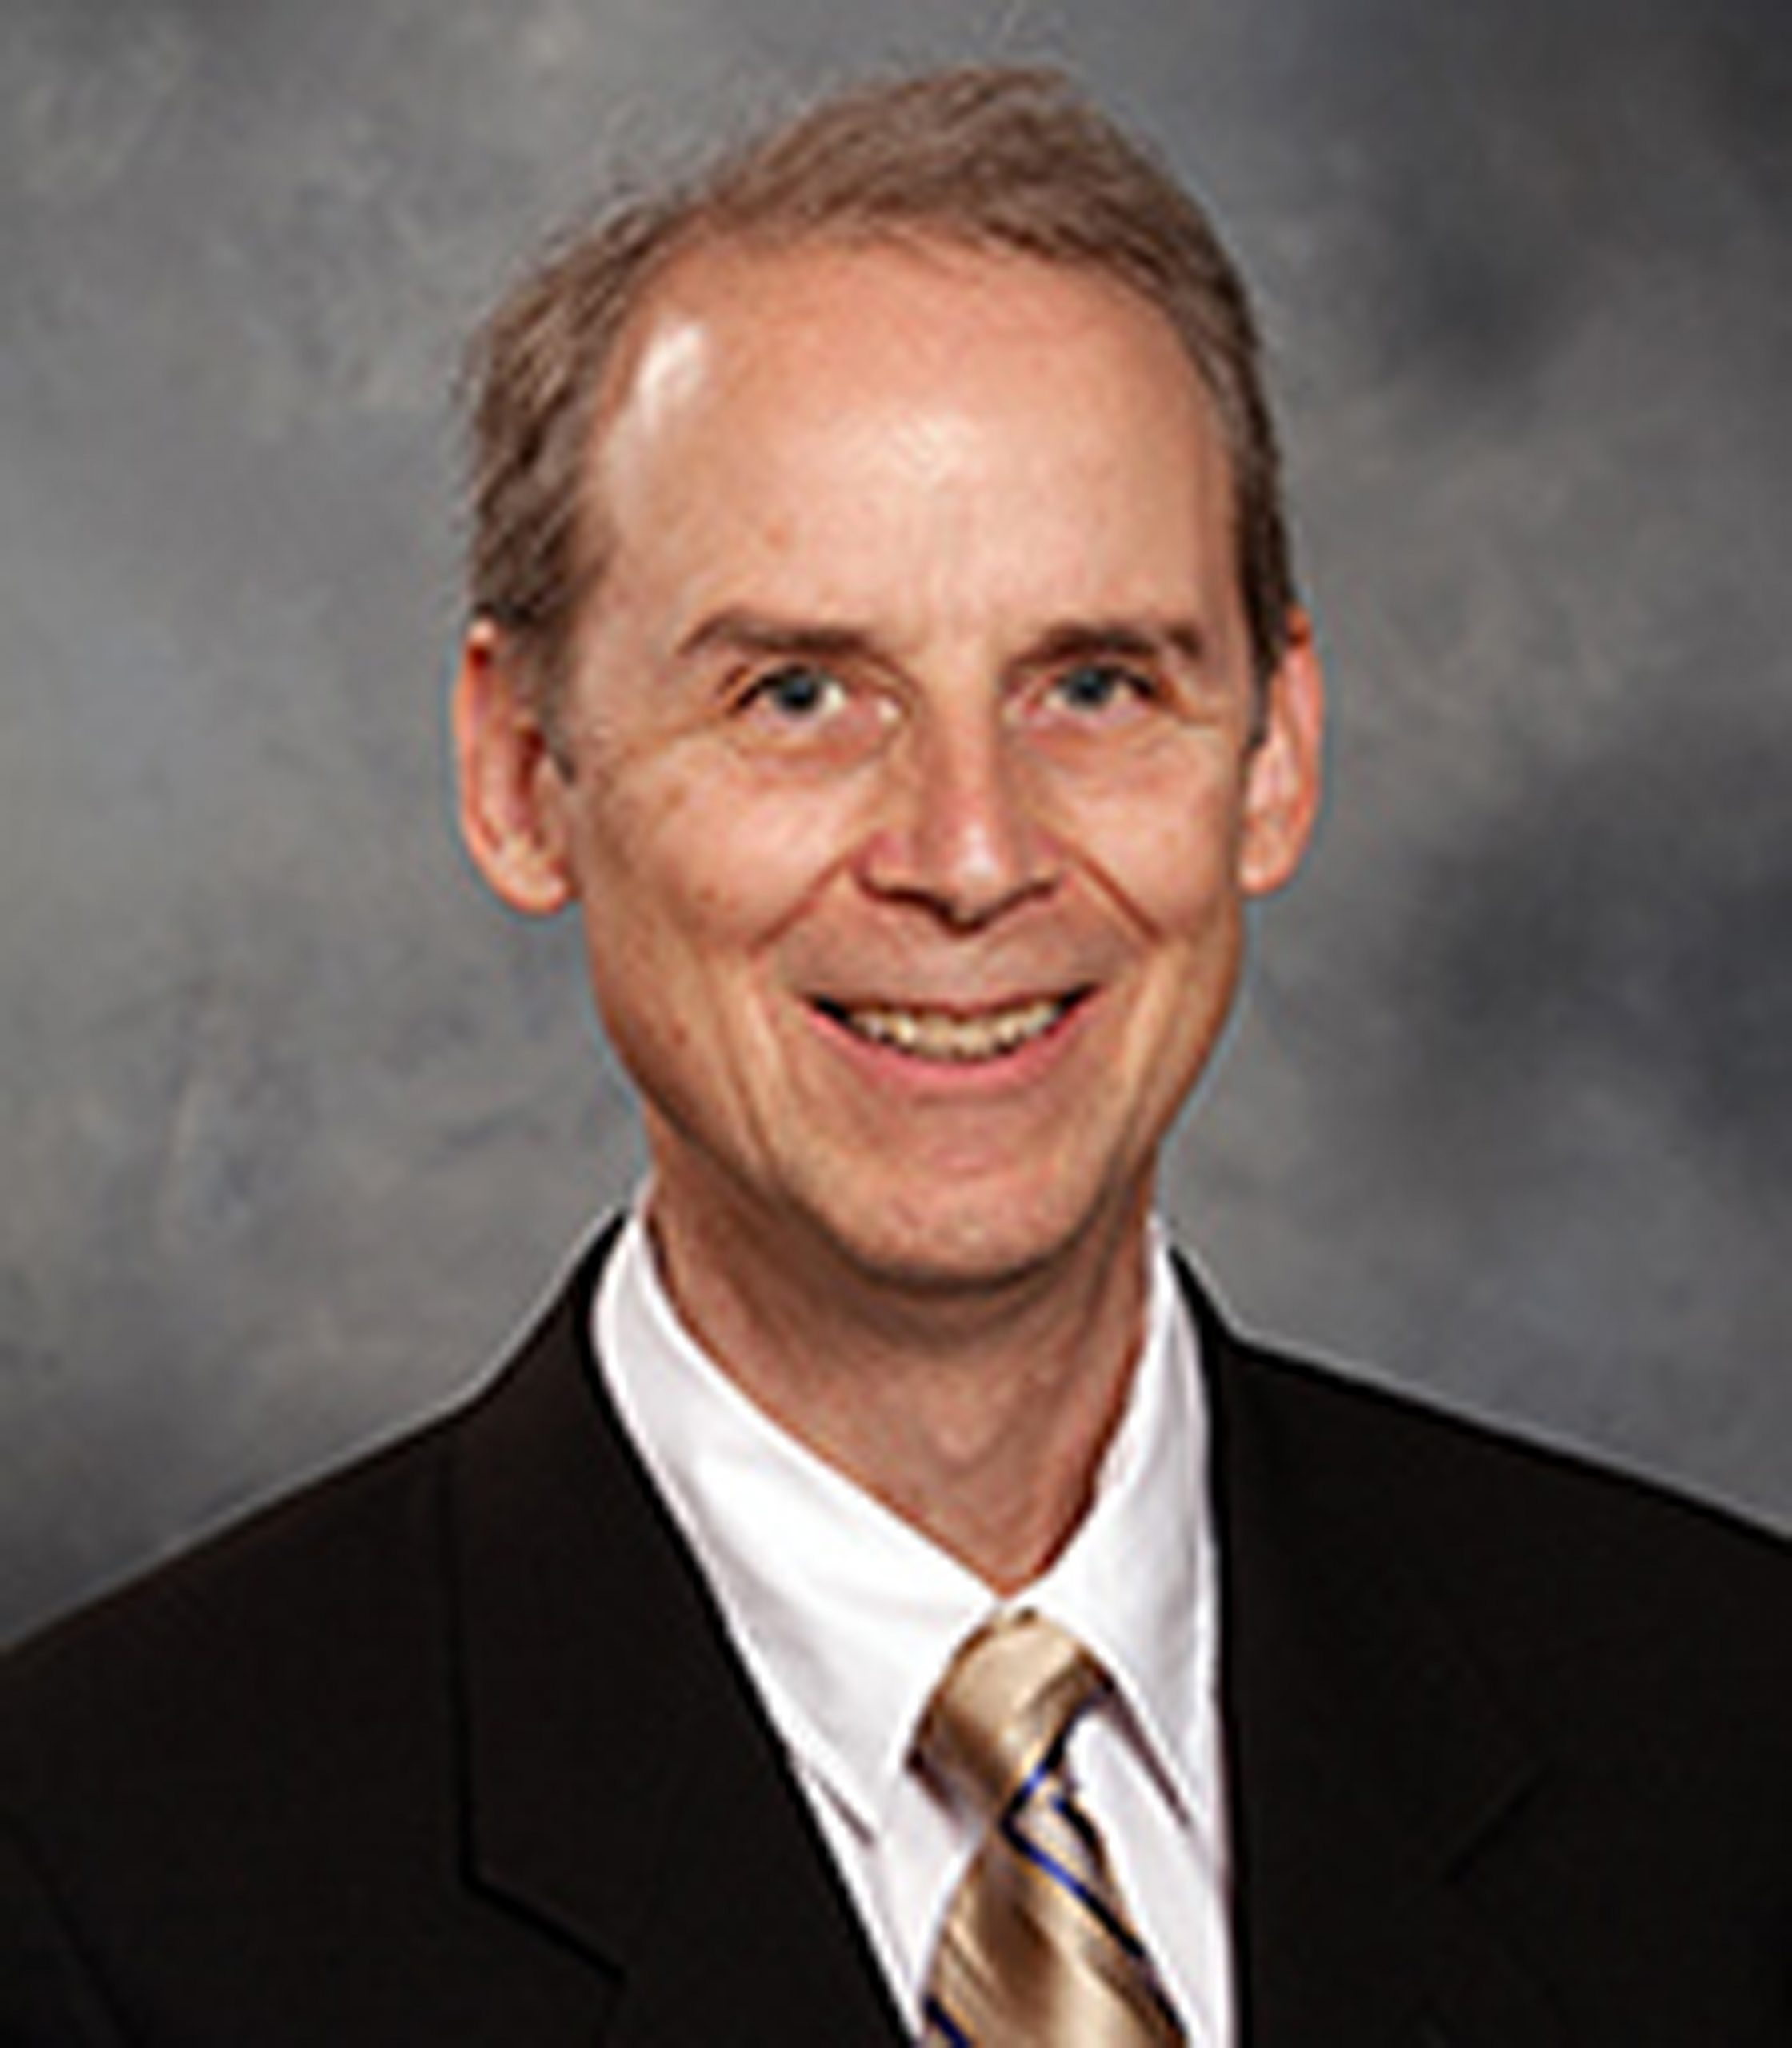 Carl W. Wittwer, M.D., Ph.D., professor of pathology and research scientist at ARUP Laboratories.